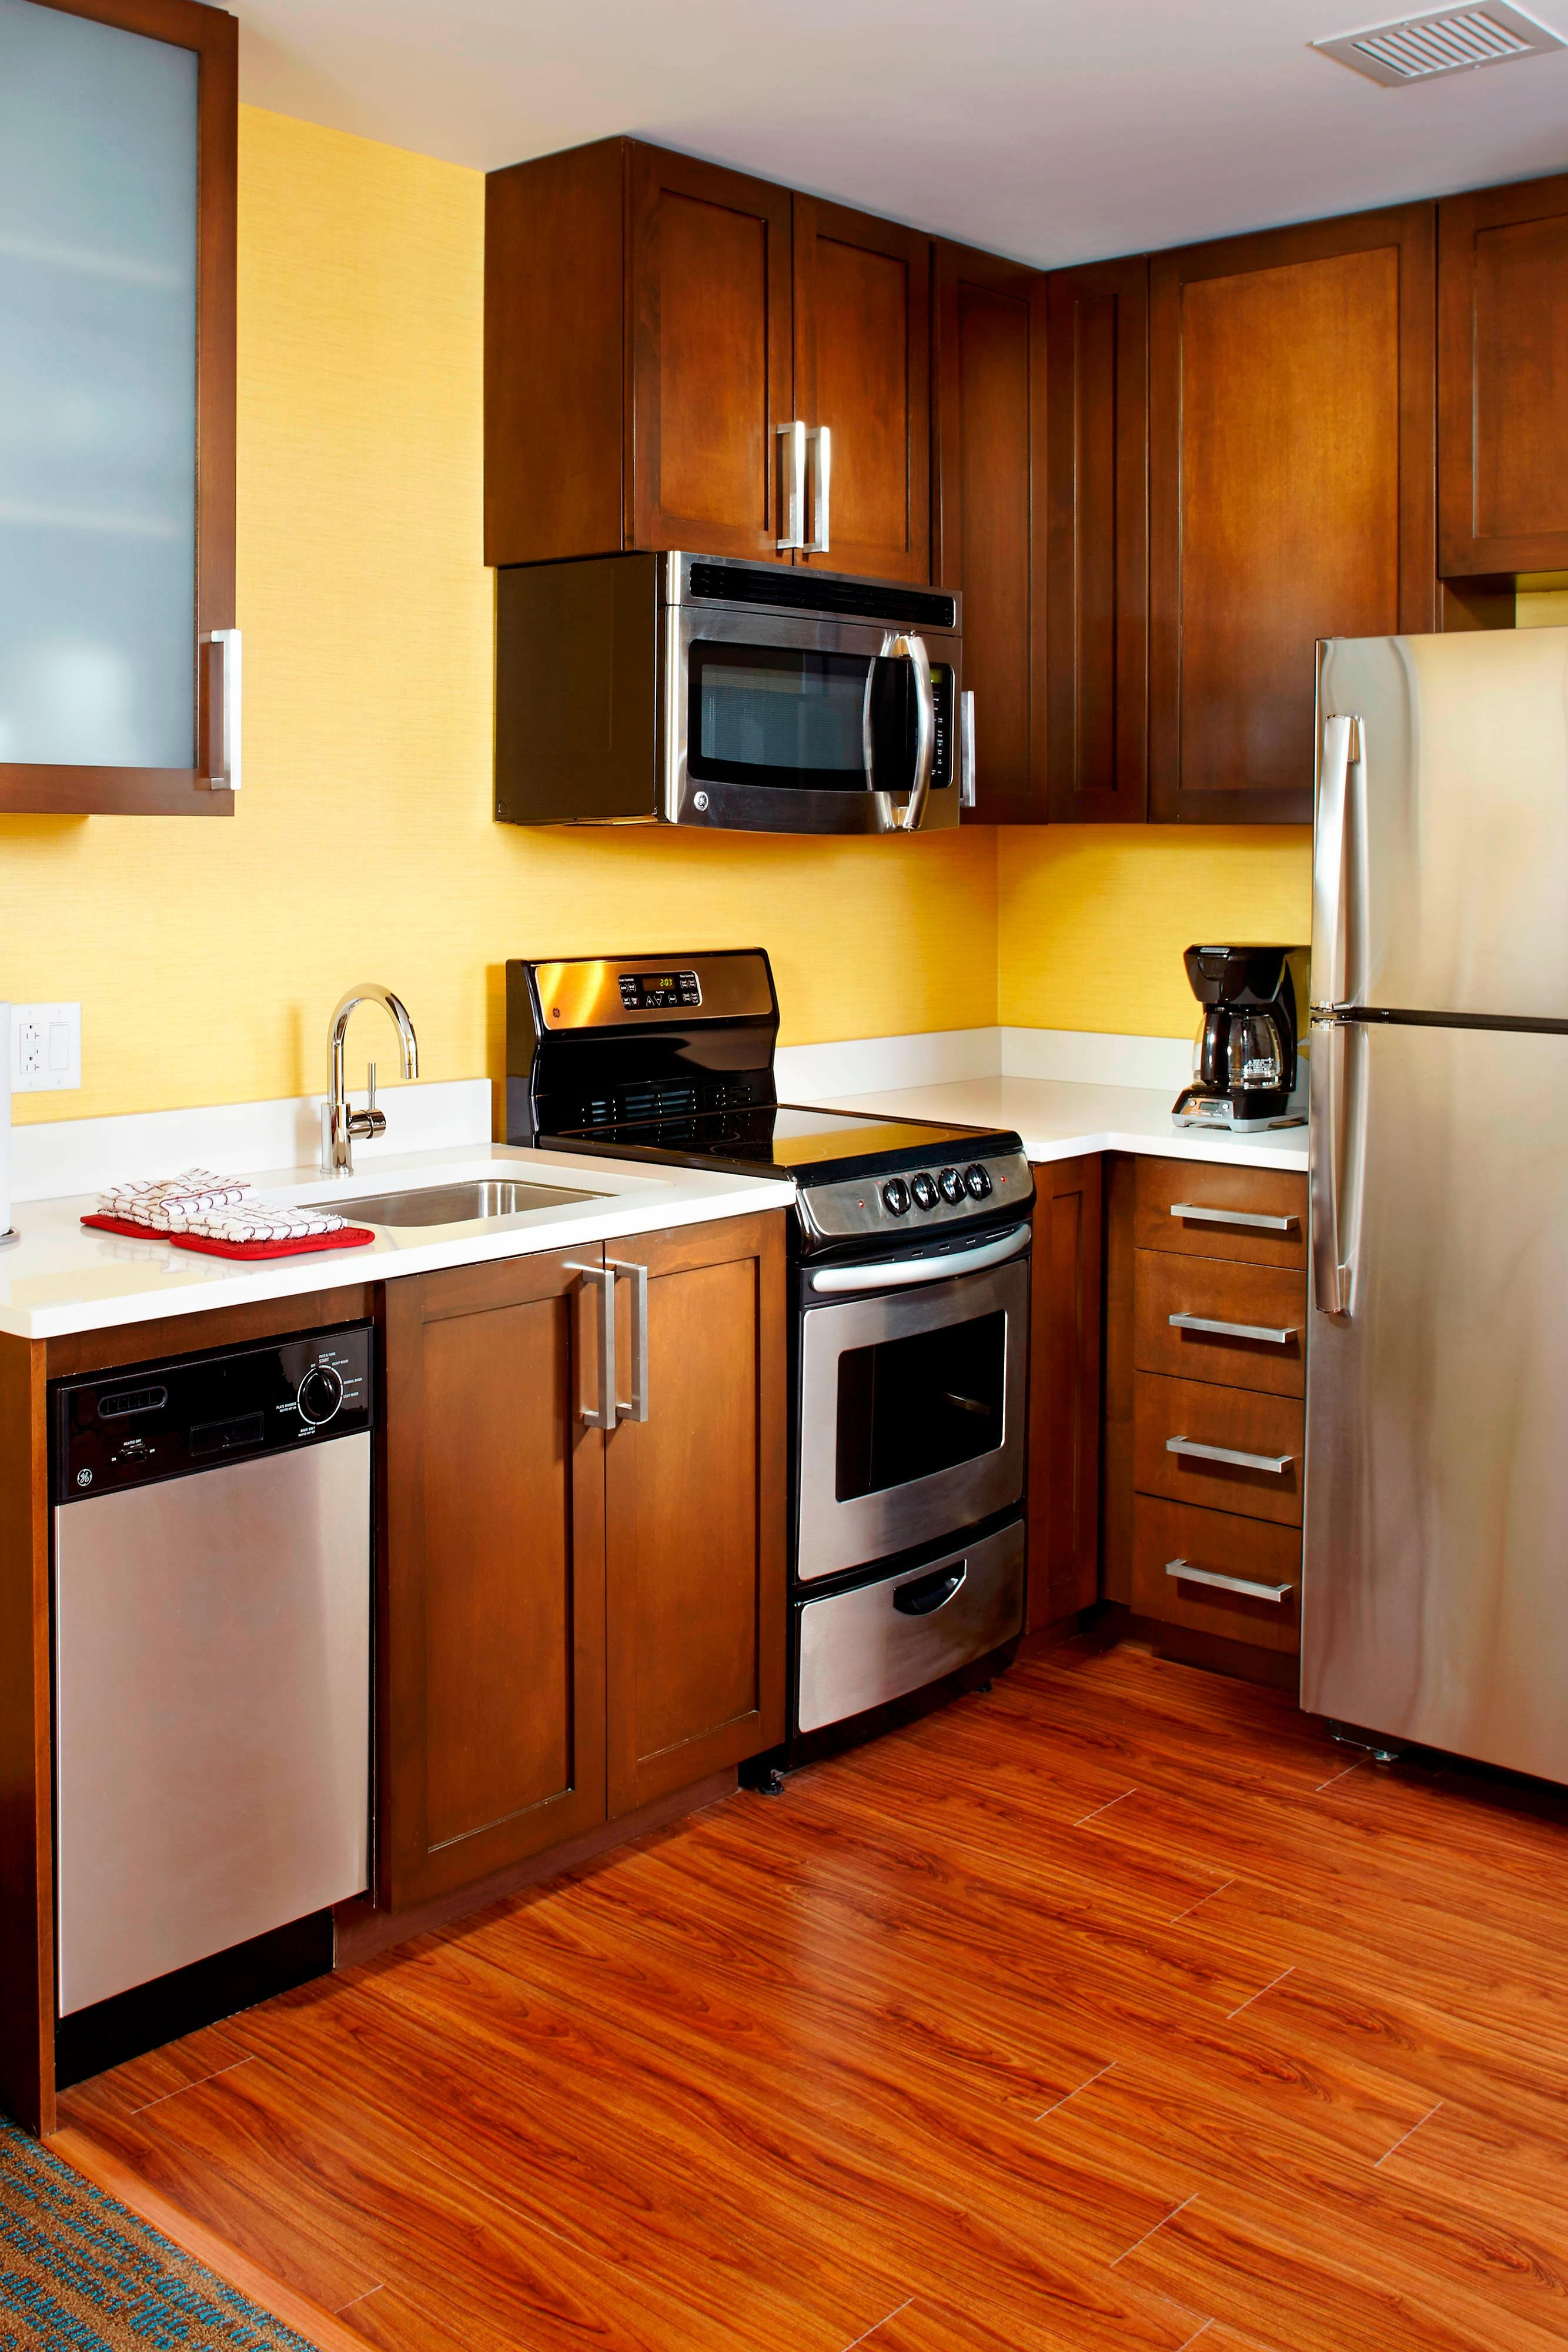 Residence Inn Fully Equipped Kitchen